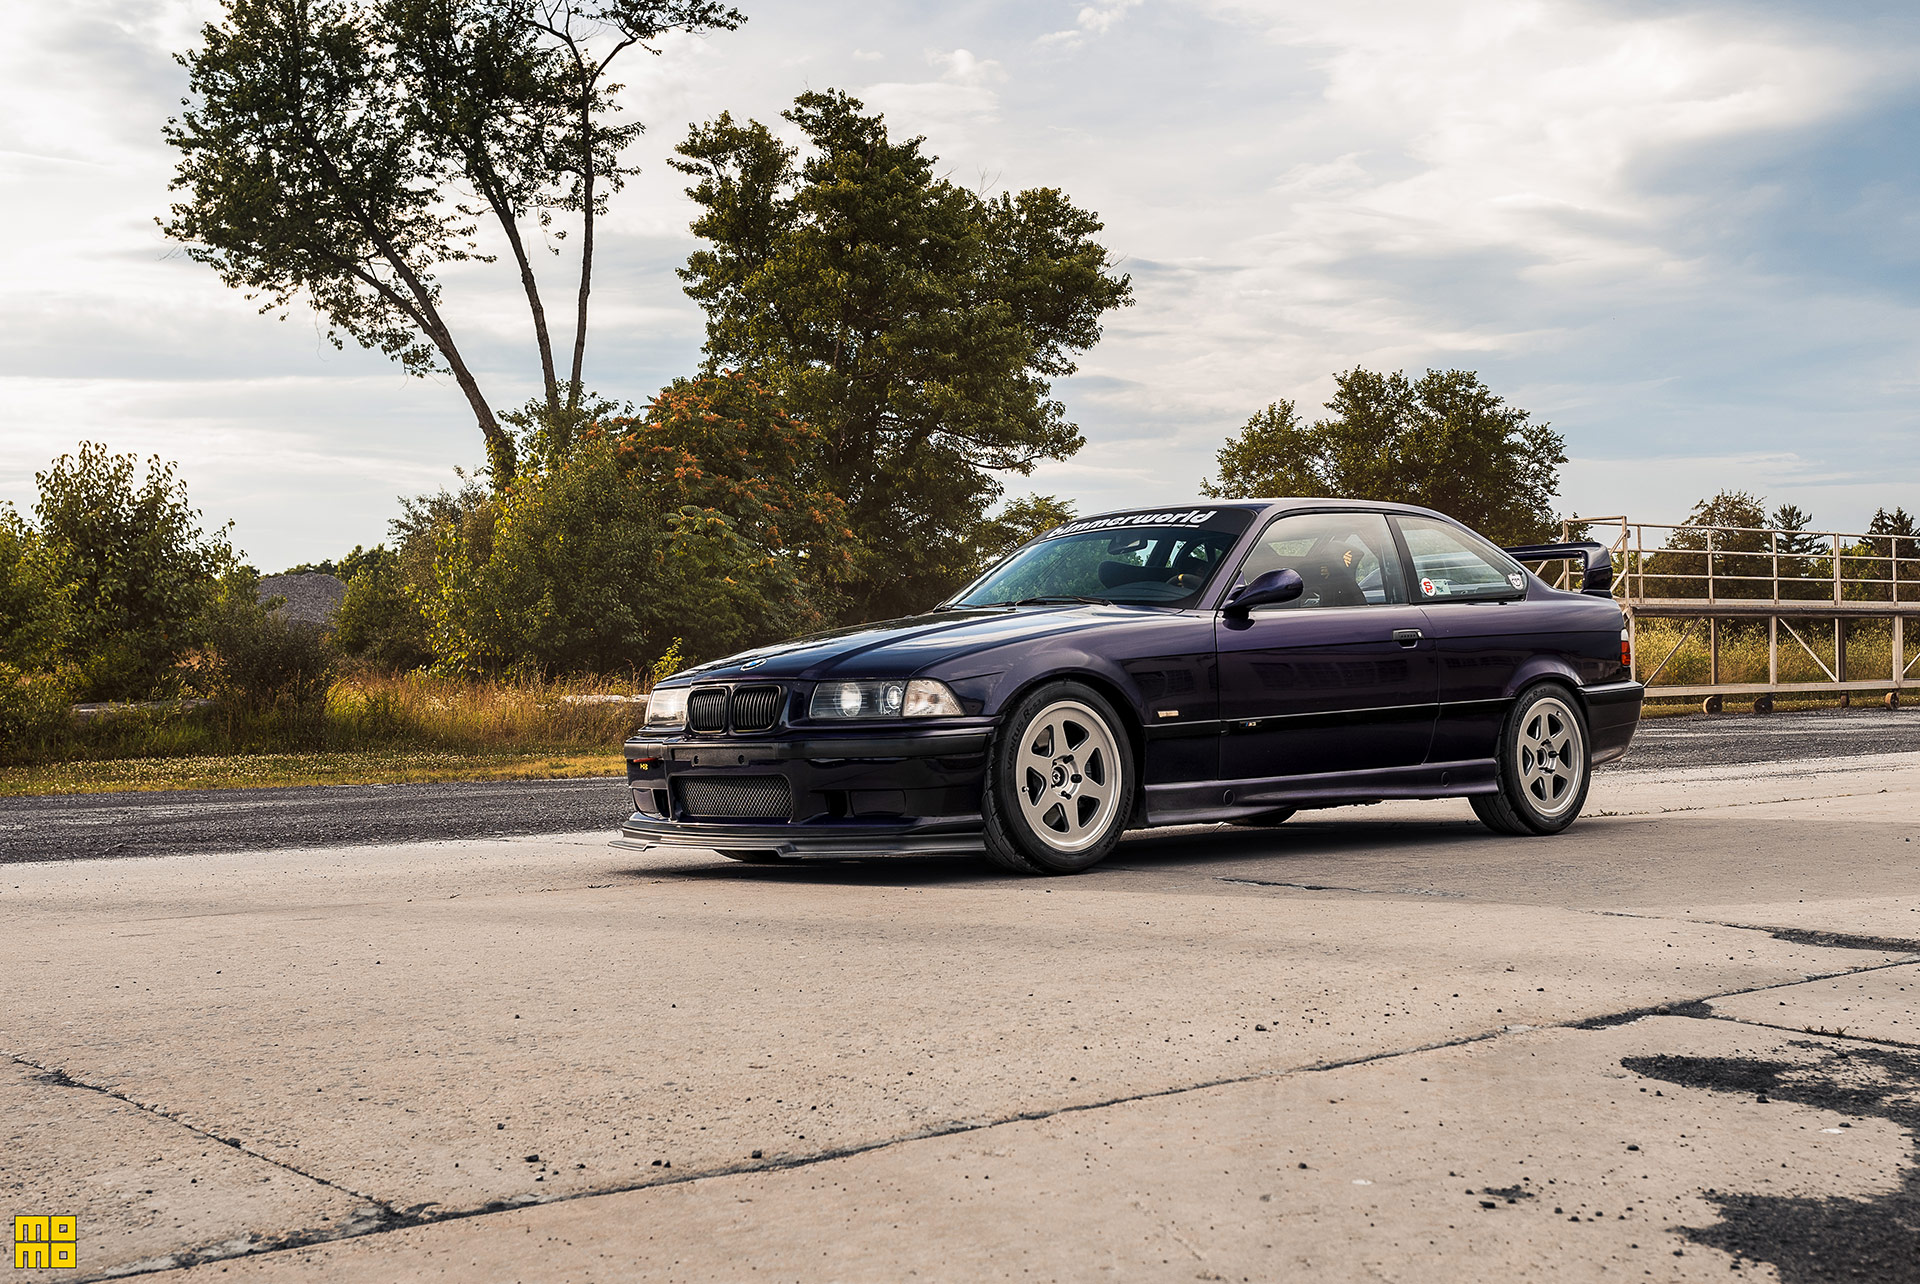 Purple BMW E36 M3 - MOMO Heritage 6 Wheels in Silver